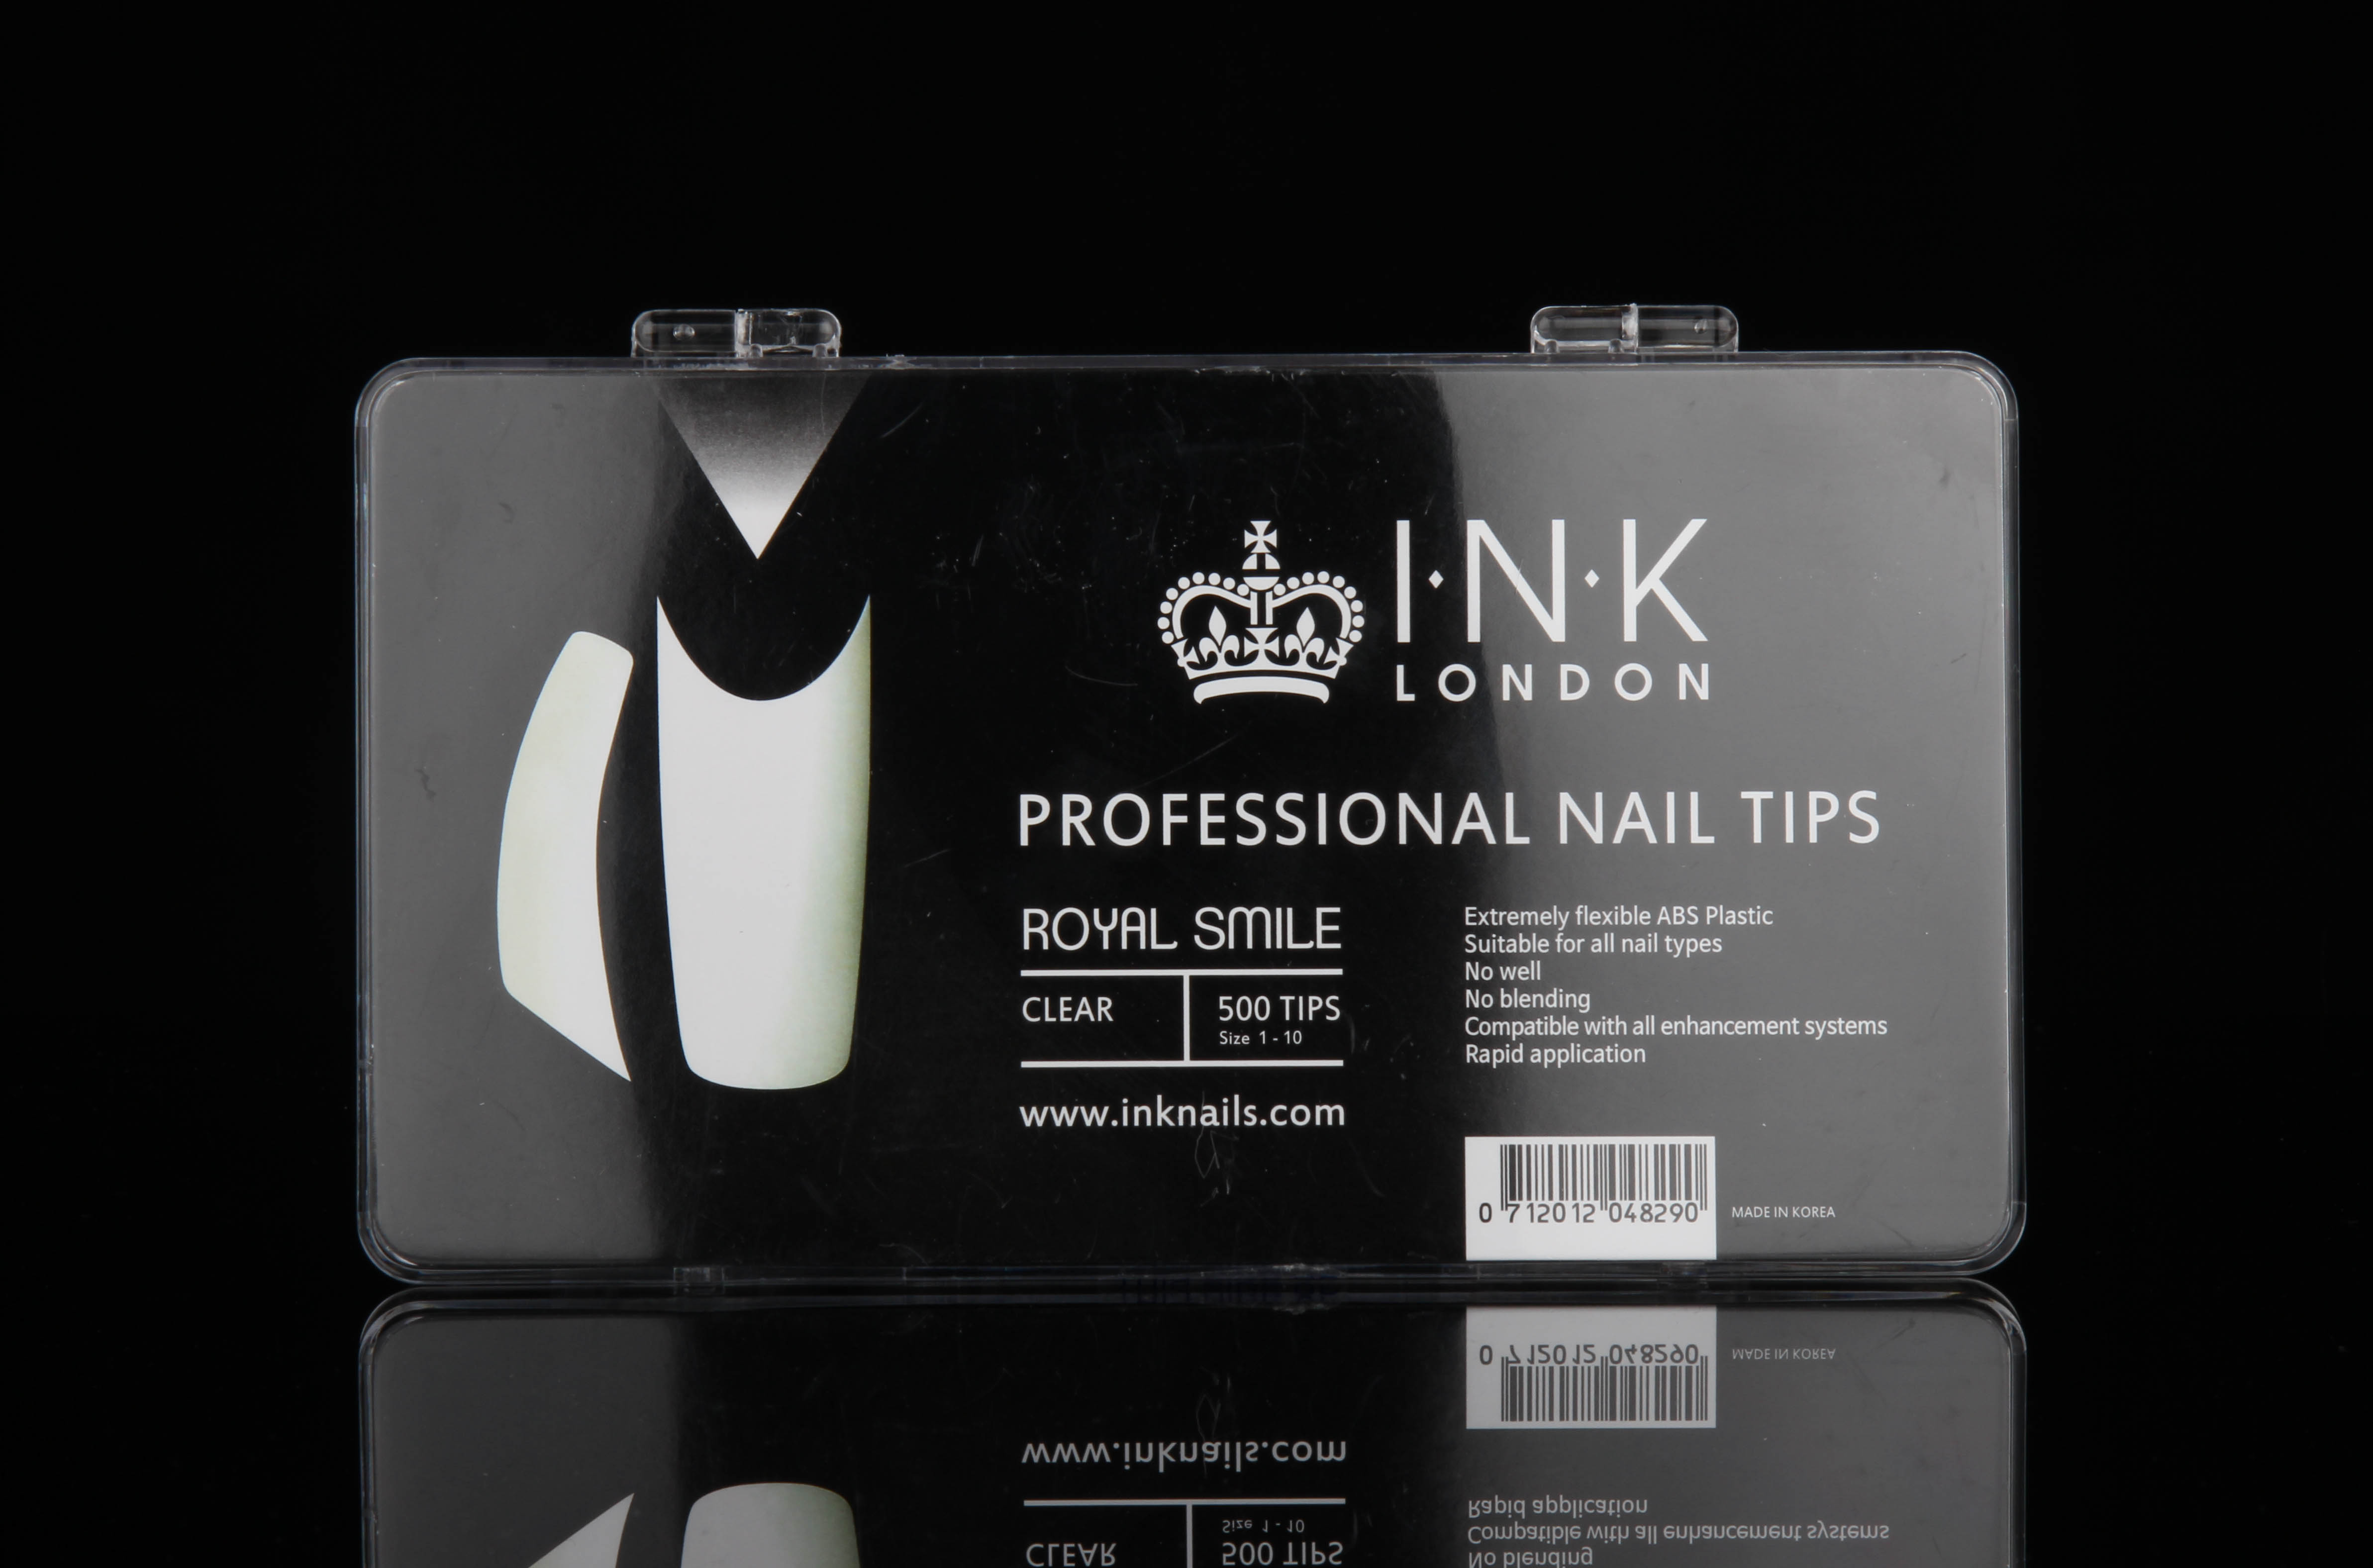 Royal Smile – Pro Nail Tips (CLEAR) – WELL-LESS (500) – Ink Nails